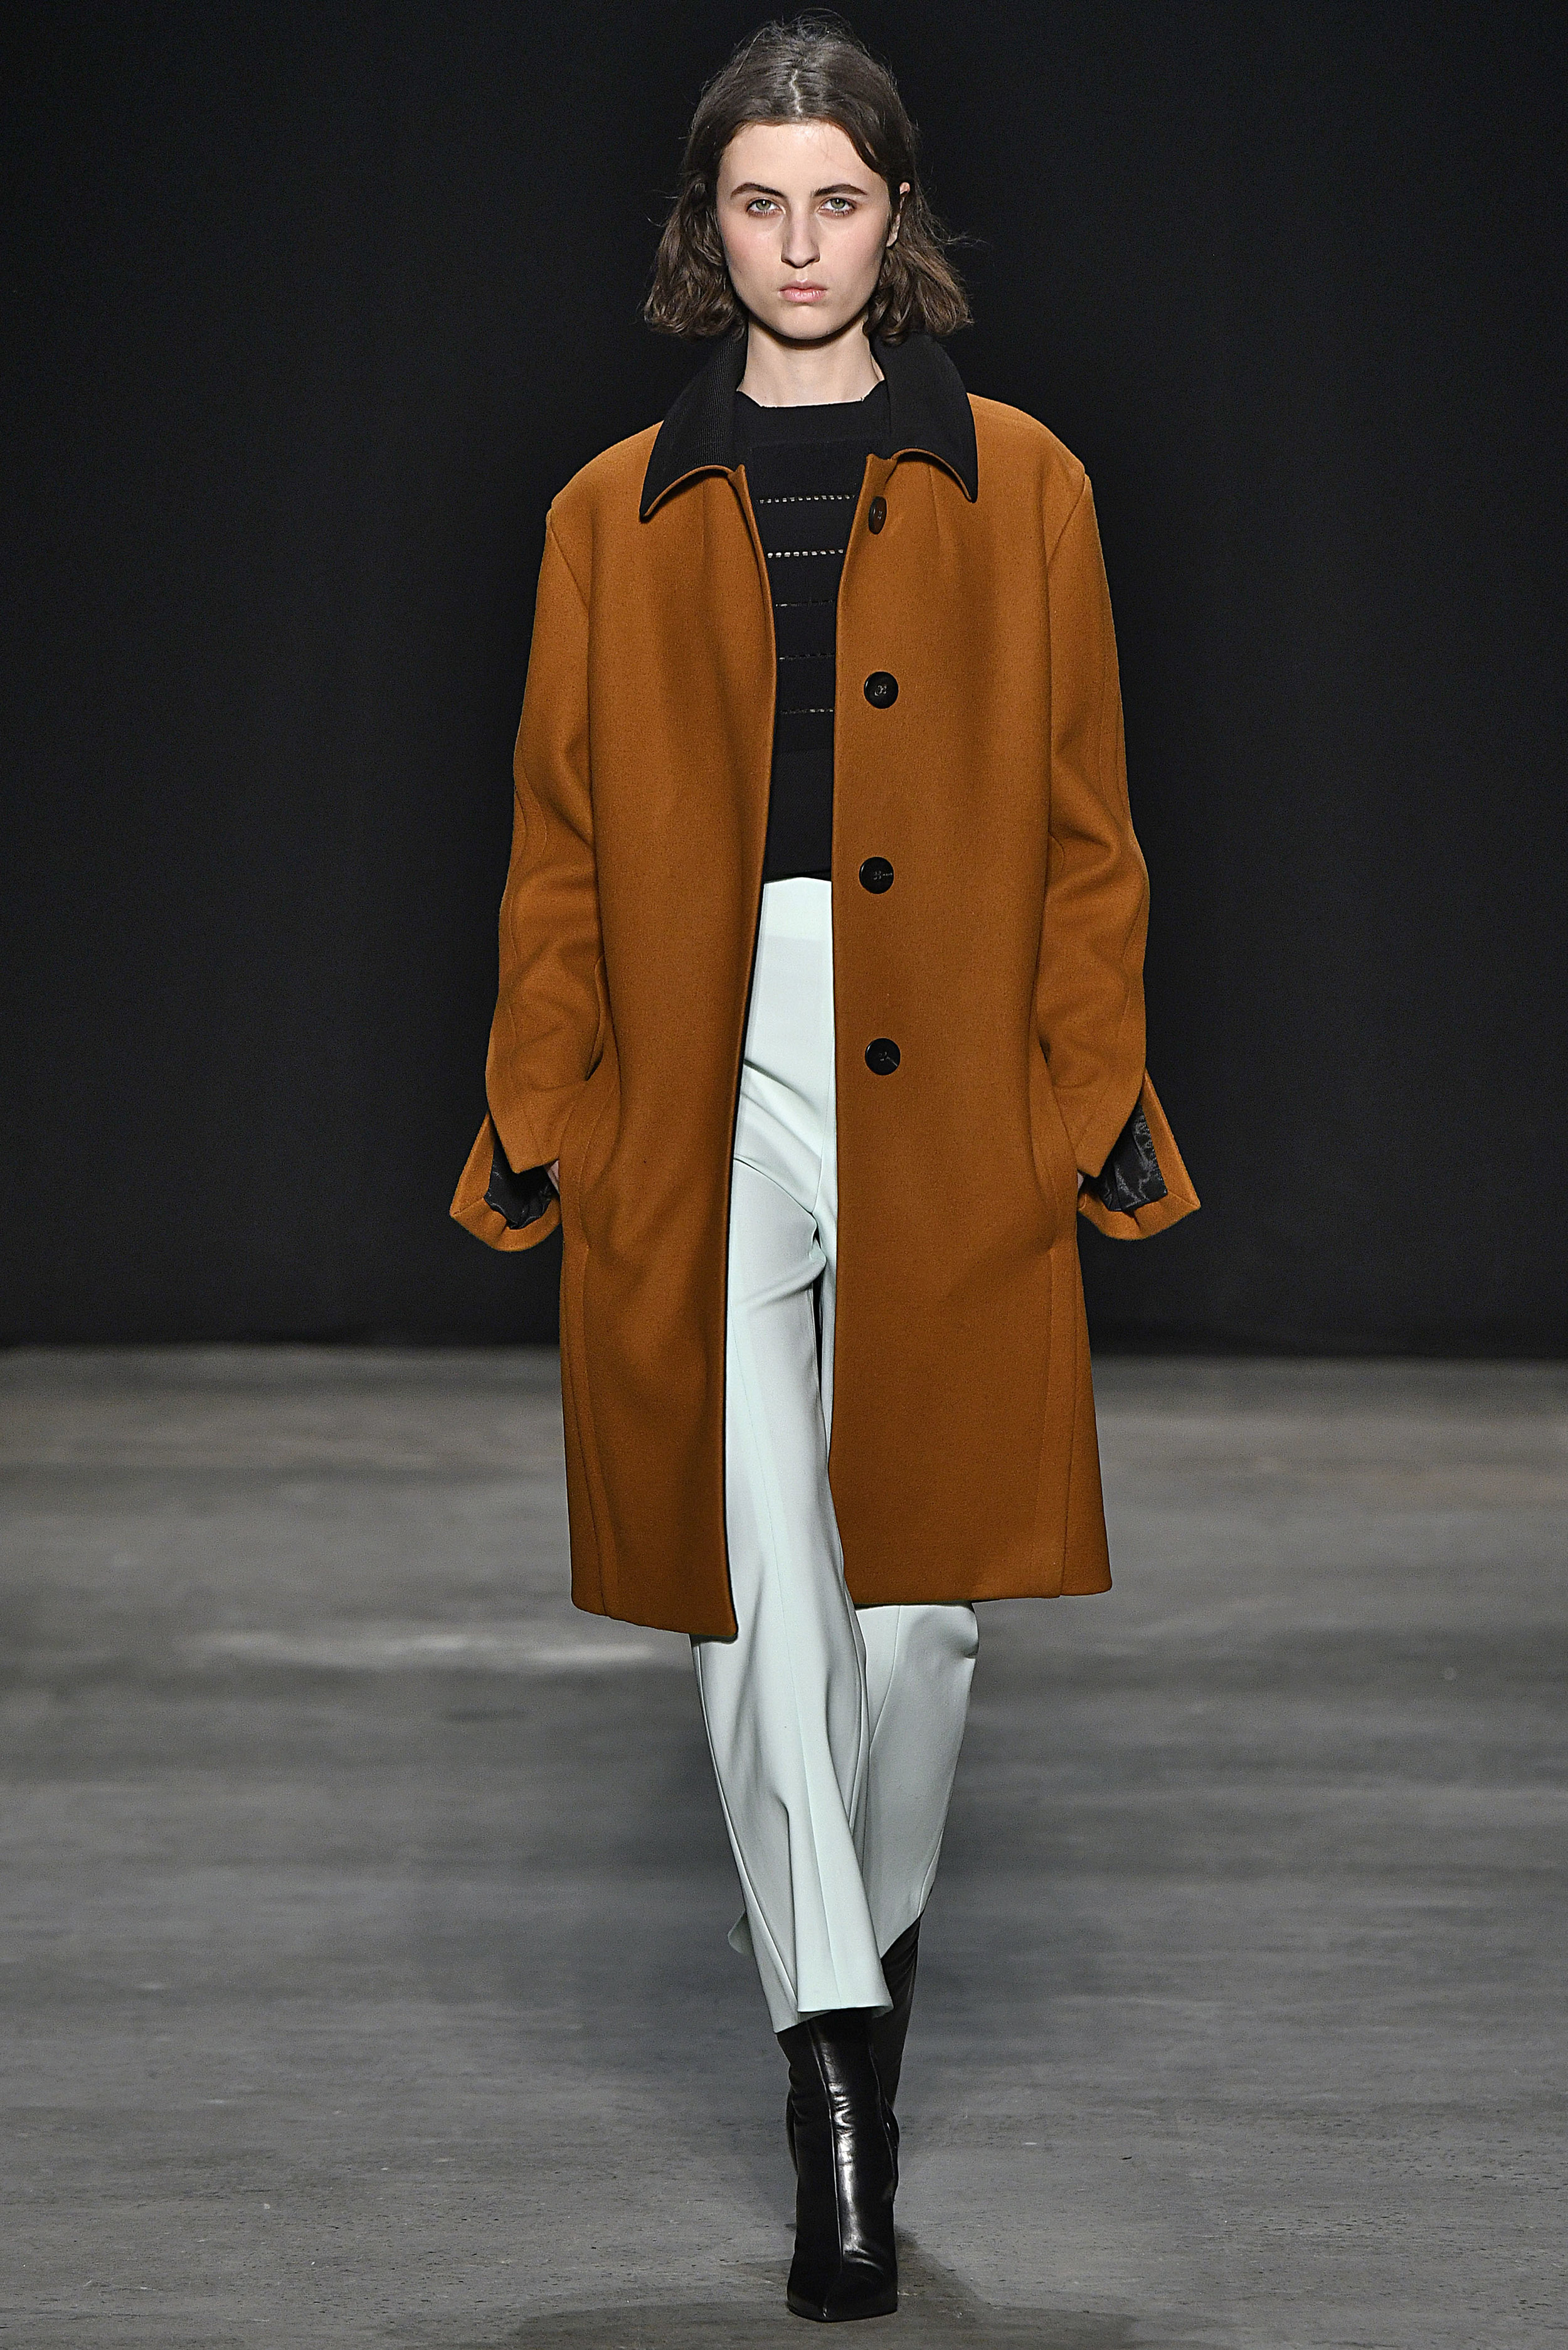 Narciso Rodriguez Fall 2017 collection. Copper/black pressed wool tab coat over black knit top with sky pressed wool pant.